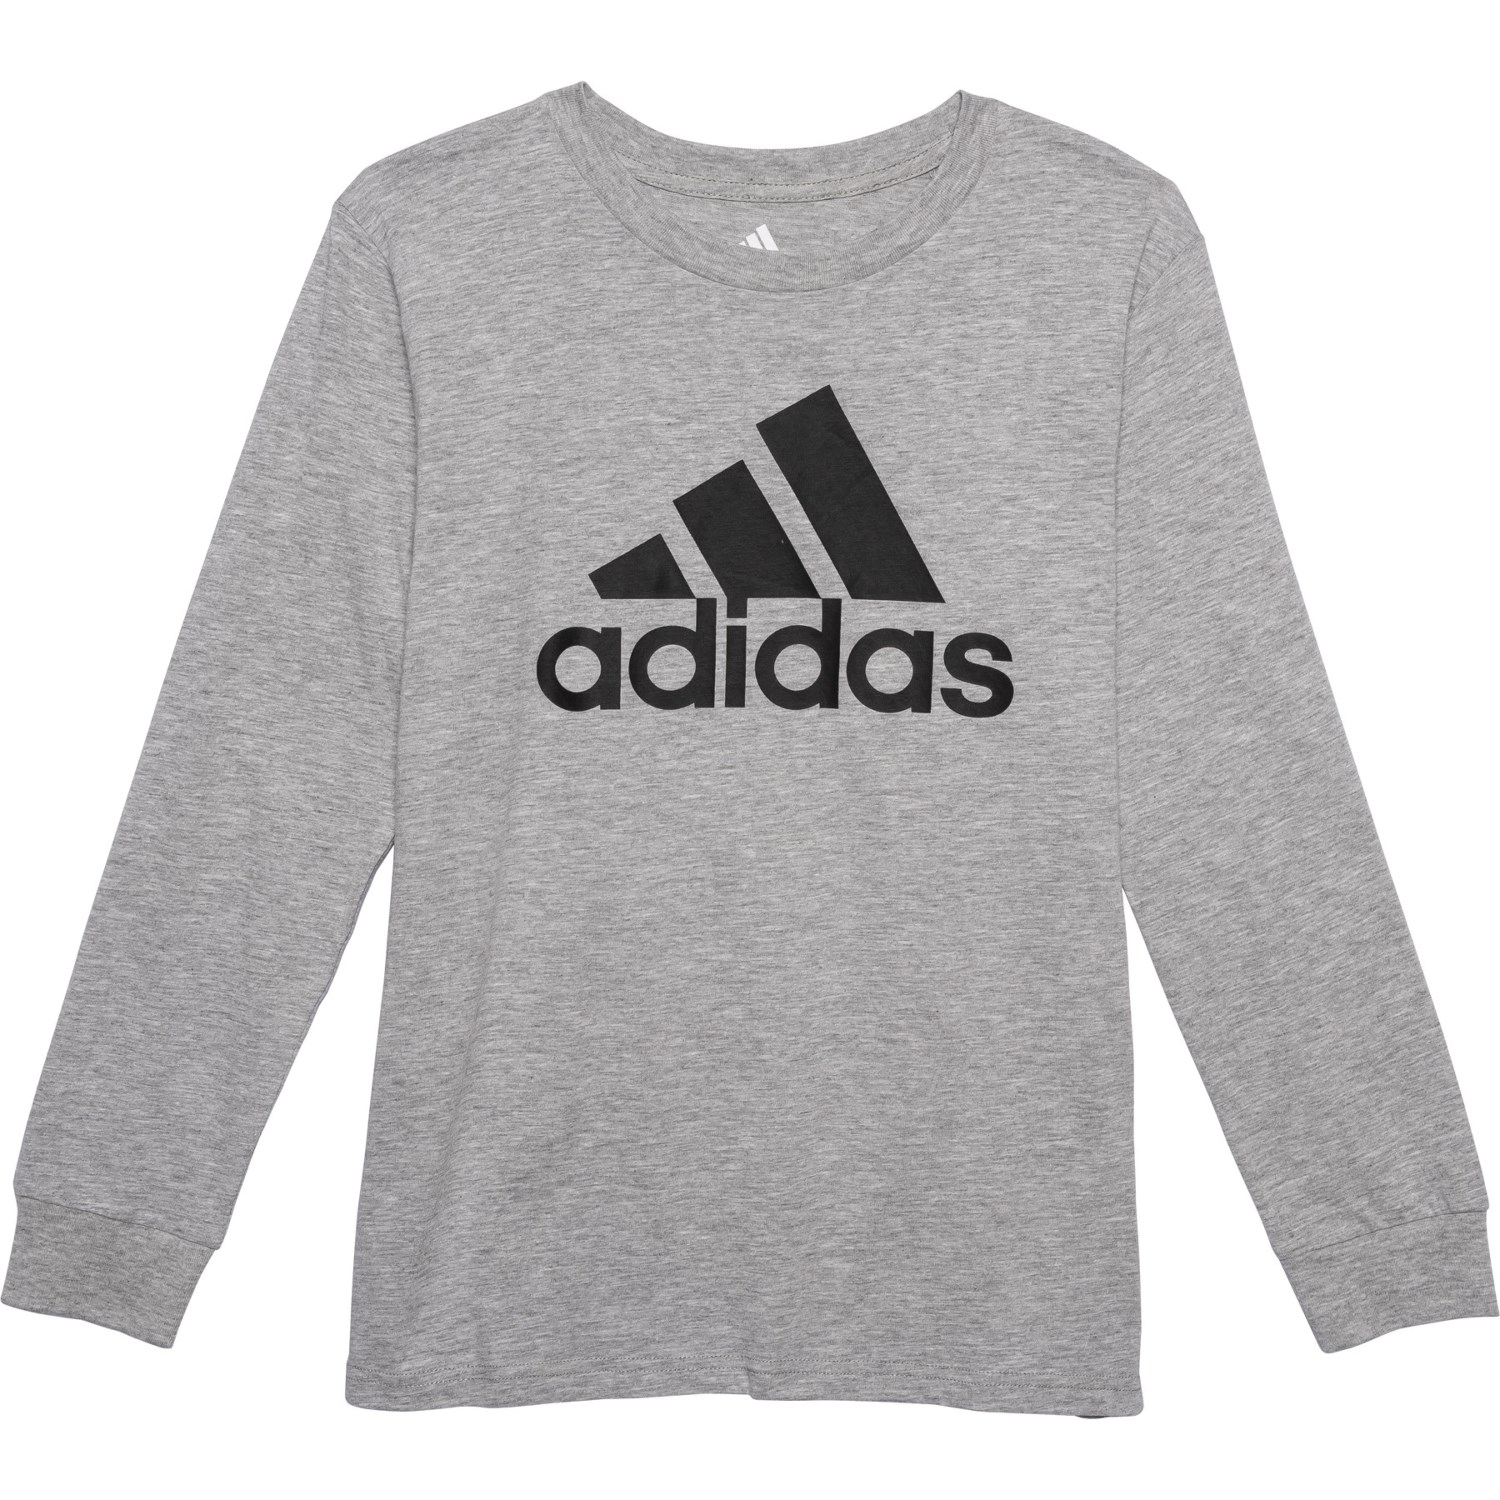 adidas Long sleeve sweater Colorful adidas logo on front All